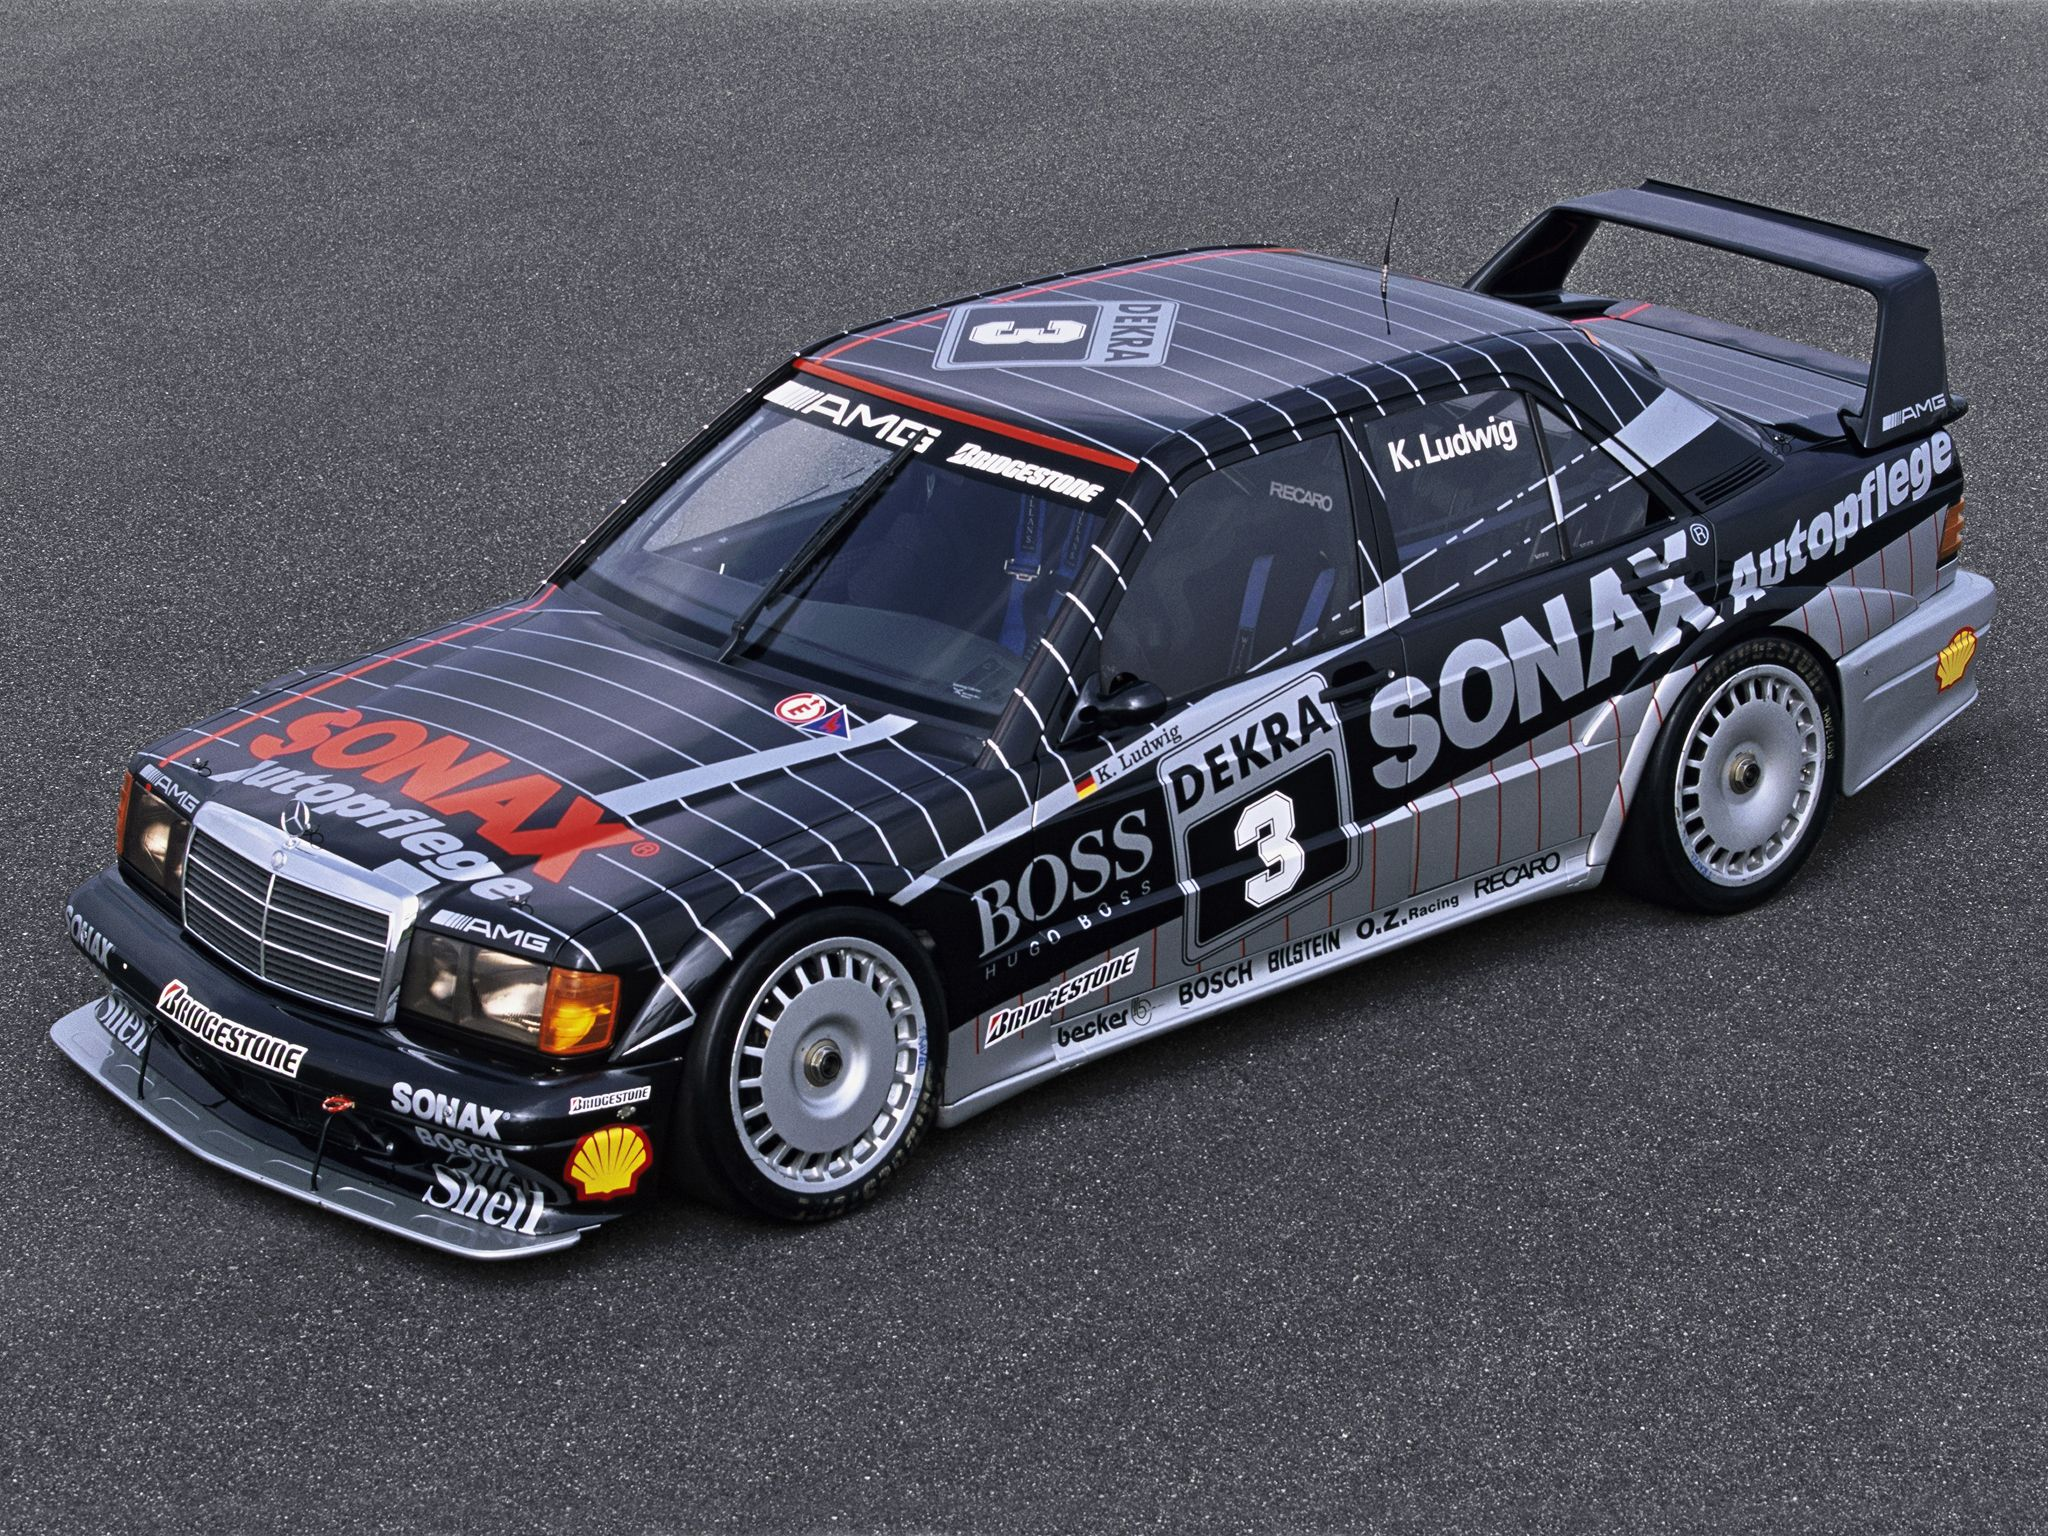 mercedes-benz 190 e 2.5-16 evolution ii dtm | race livery